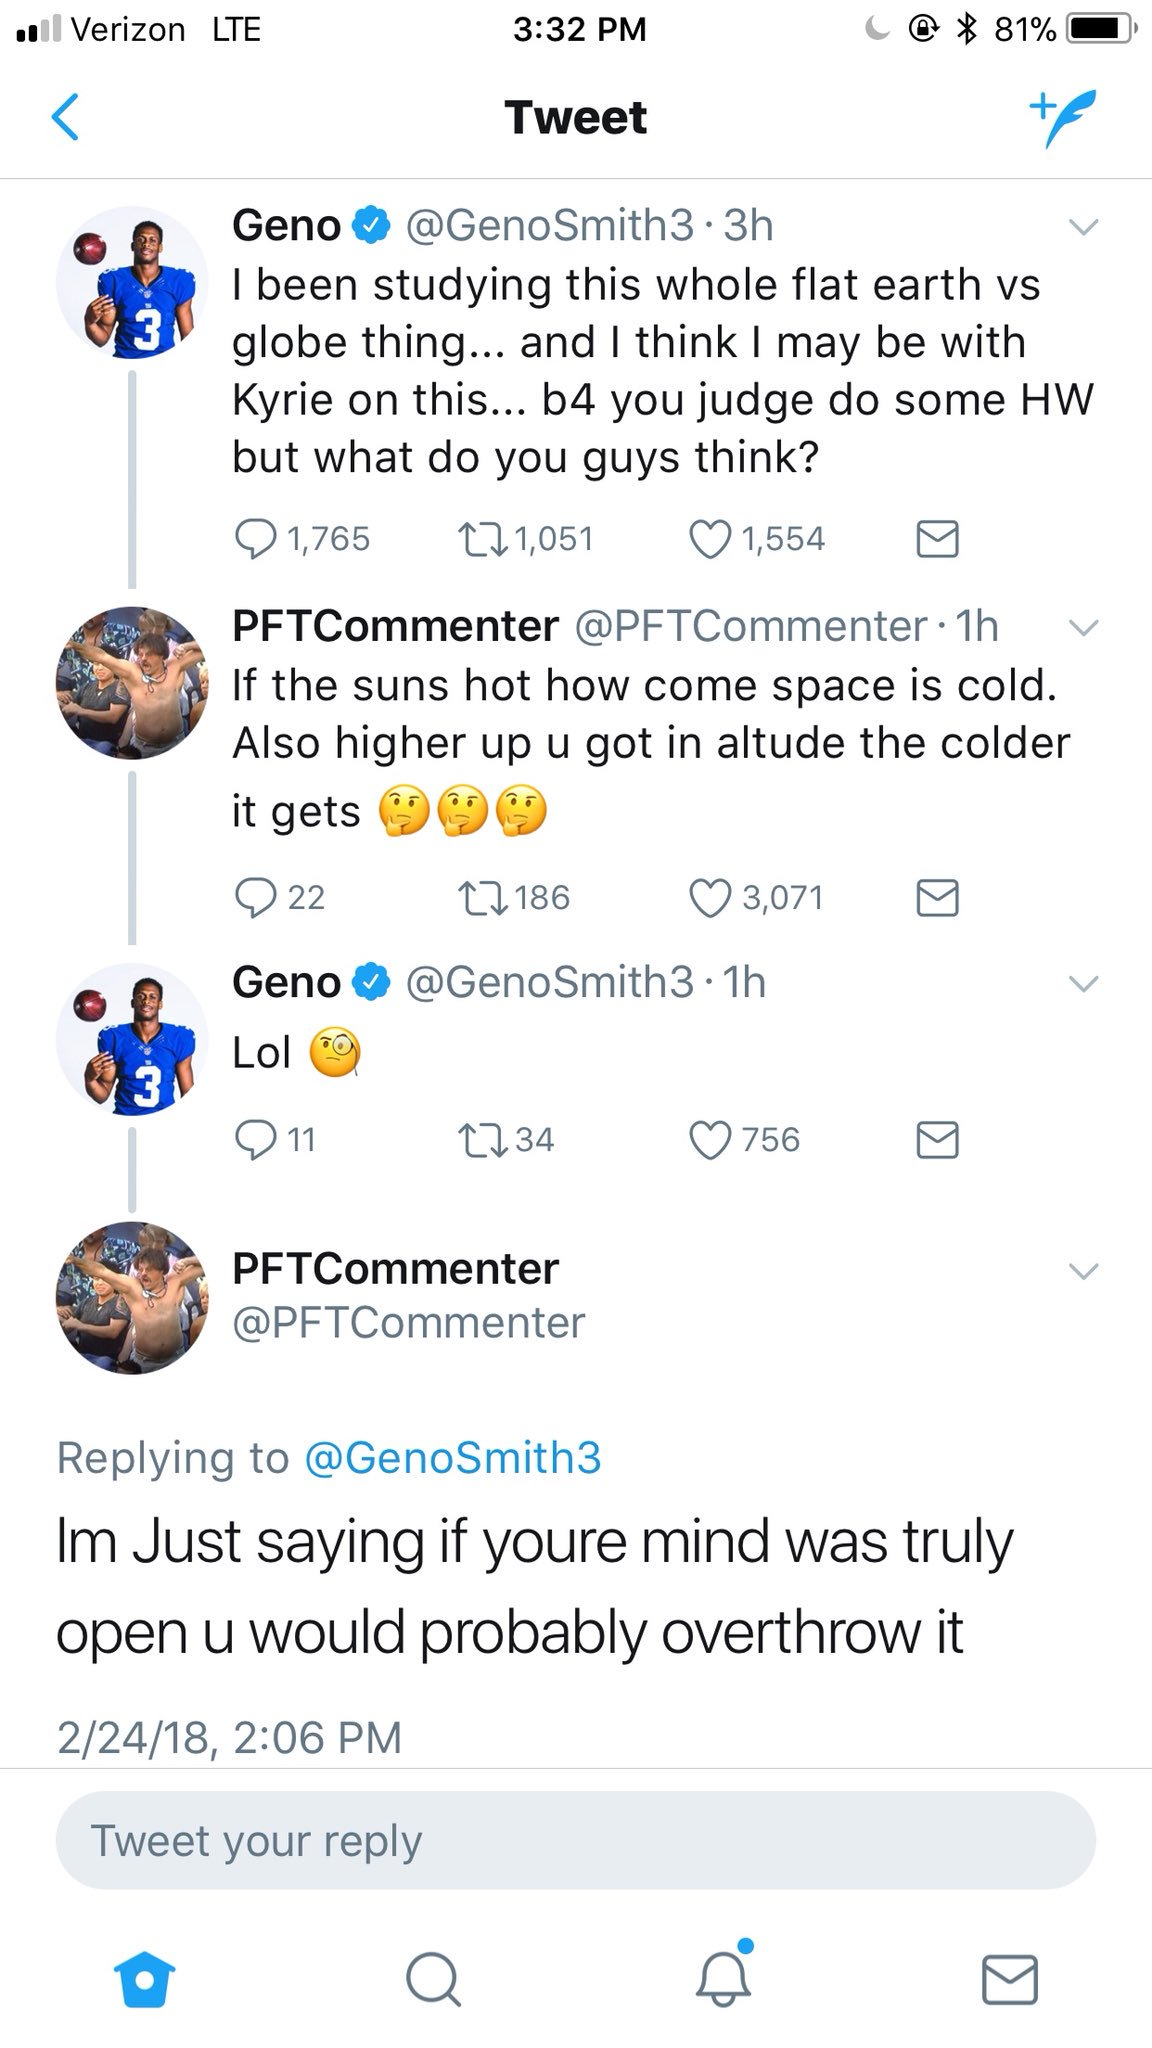 This dude, @PFTCommenter's brain is elite ������ https://t.co/IhX9DJ8Dki